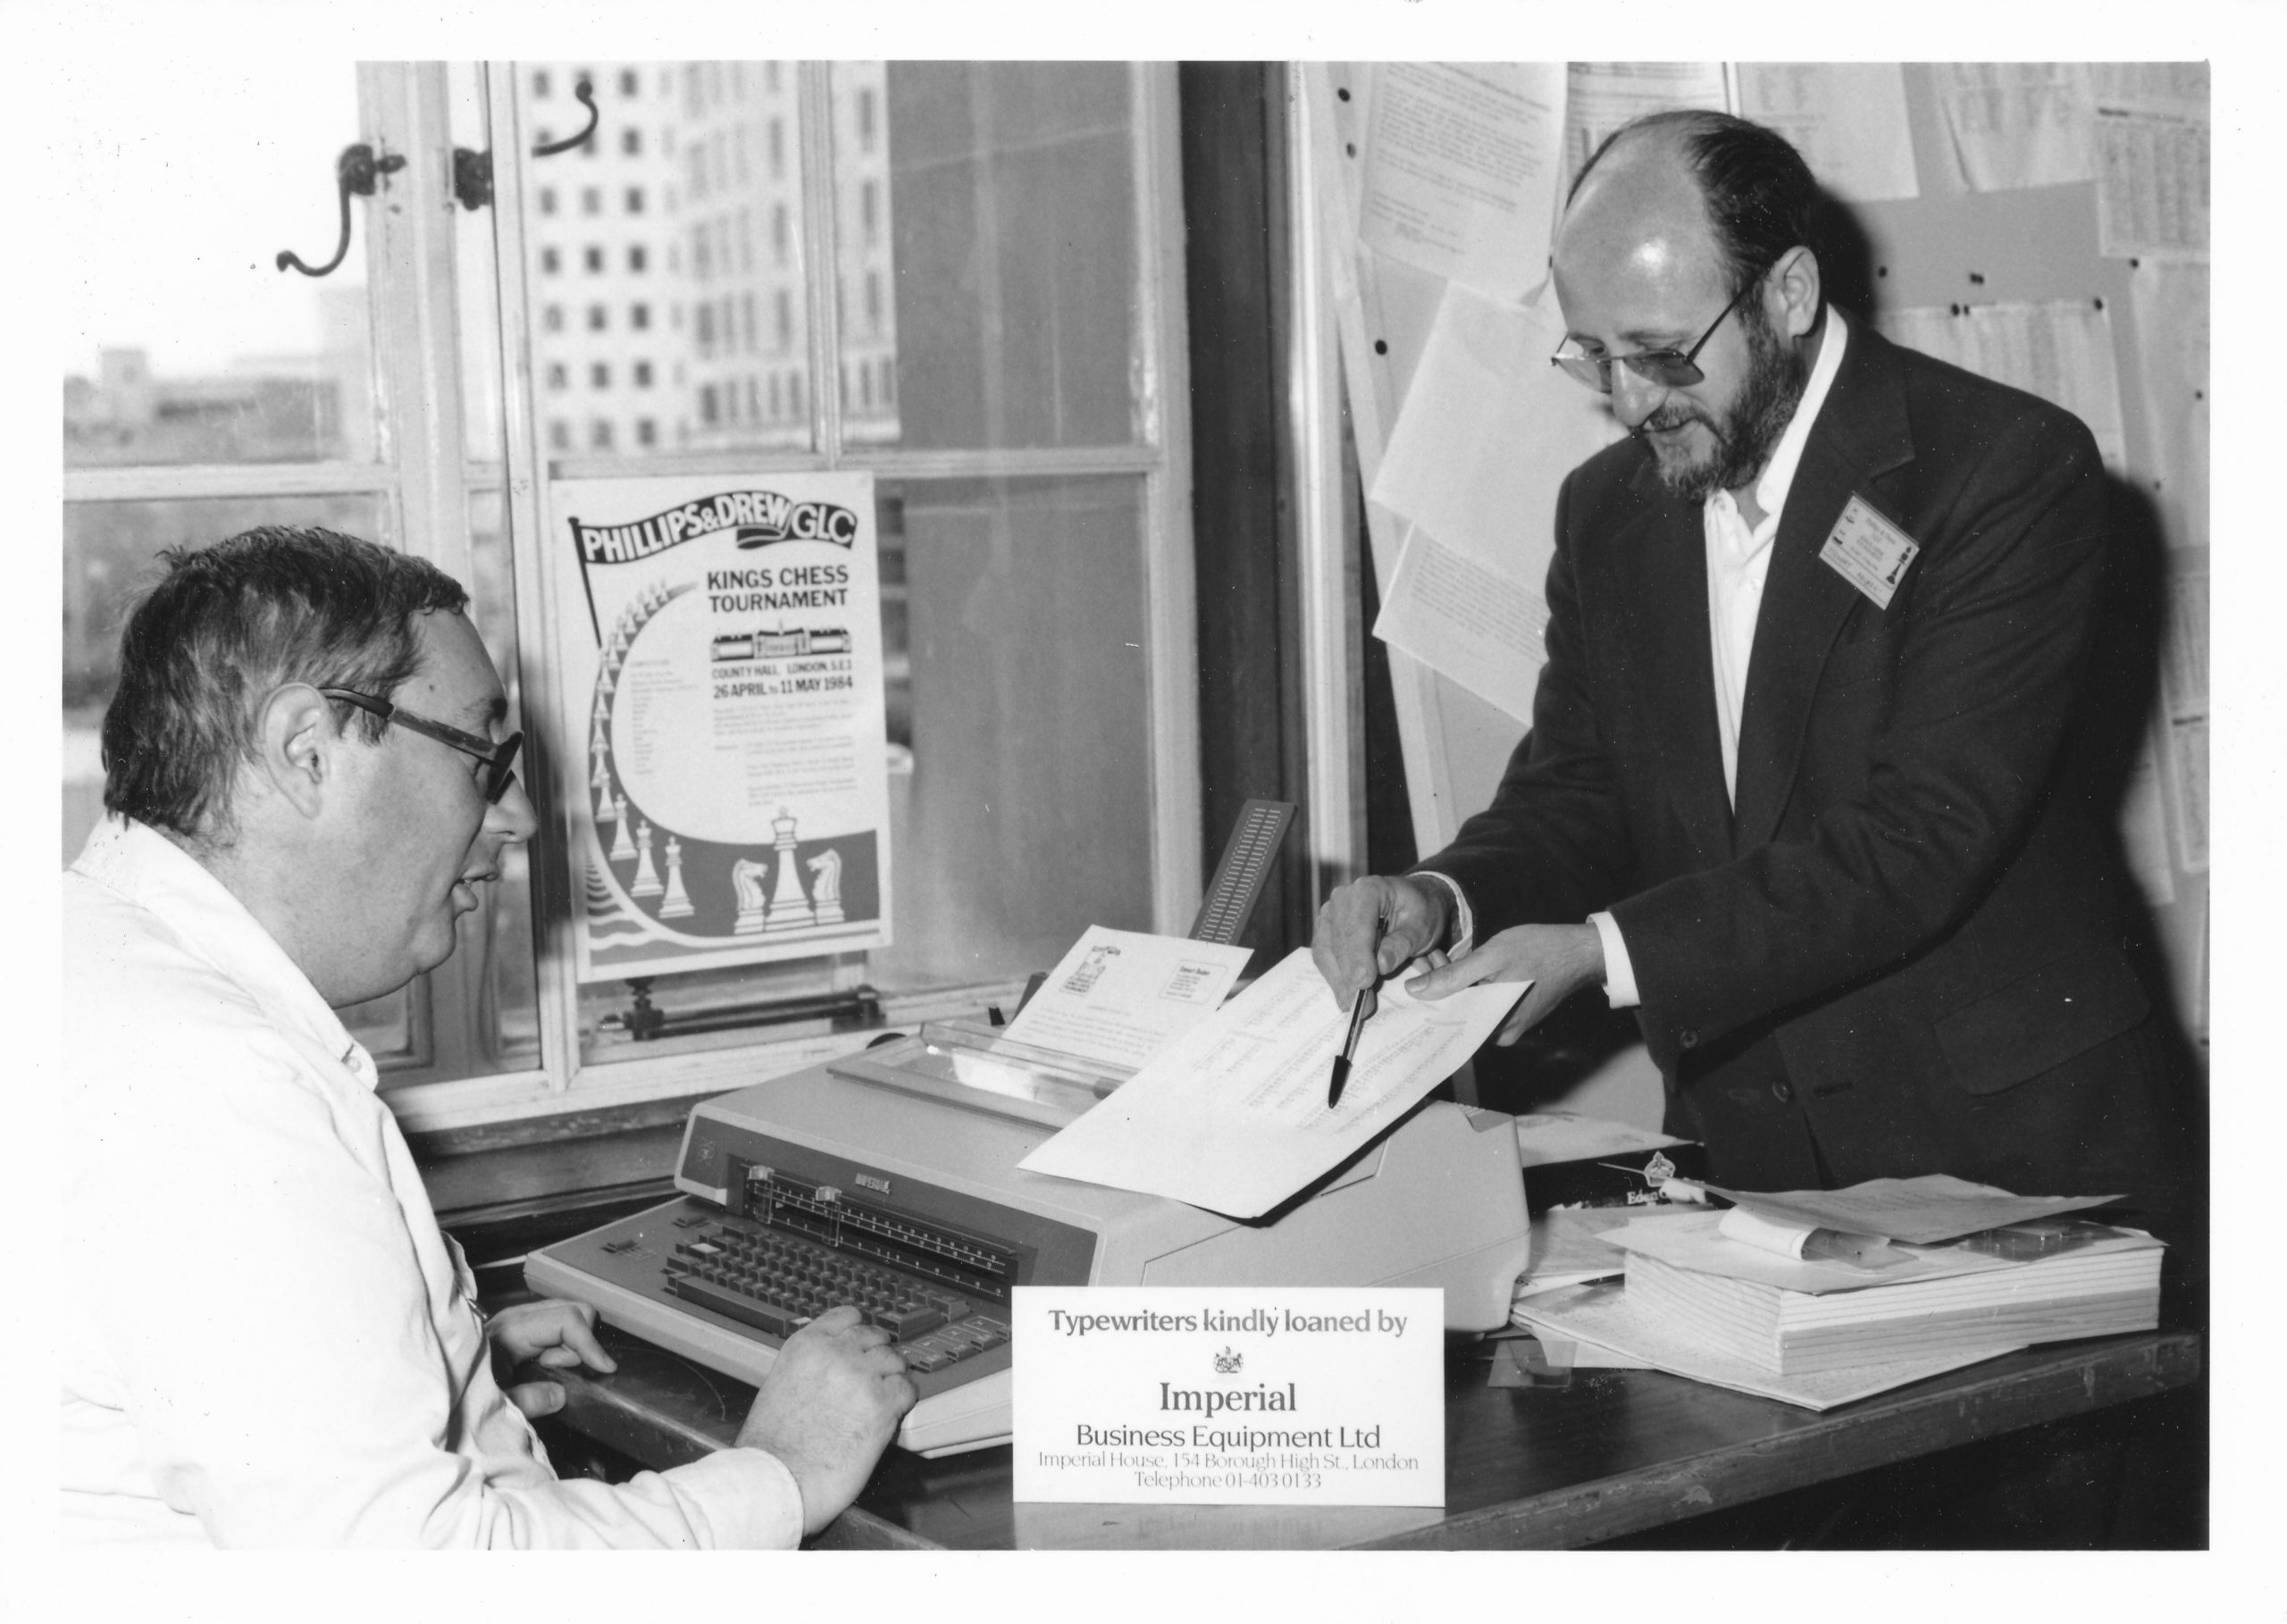 Richard W. O'Brien and Stewart Reuben working on a bulletin